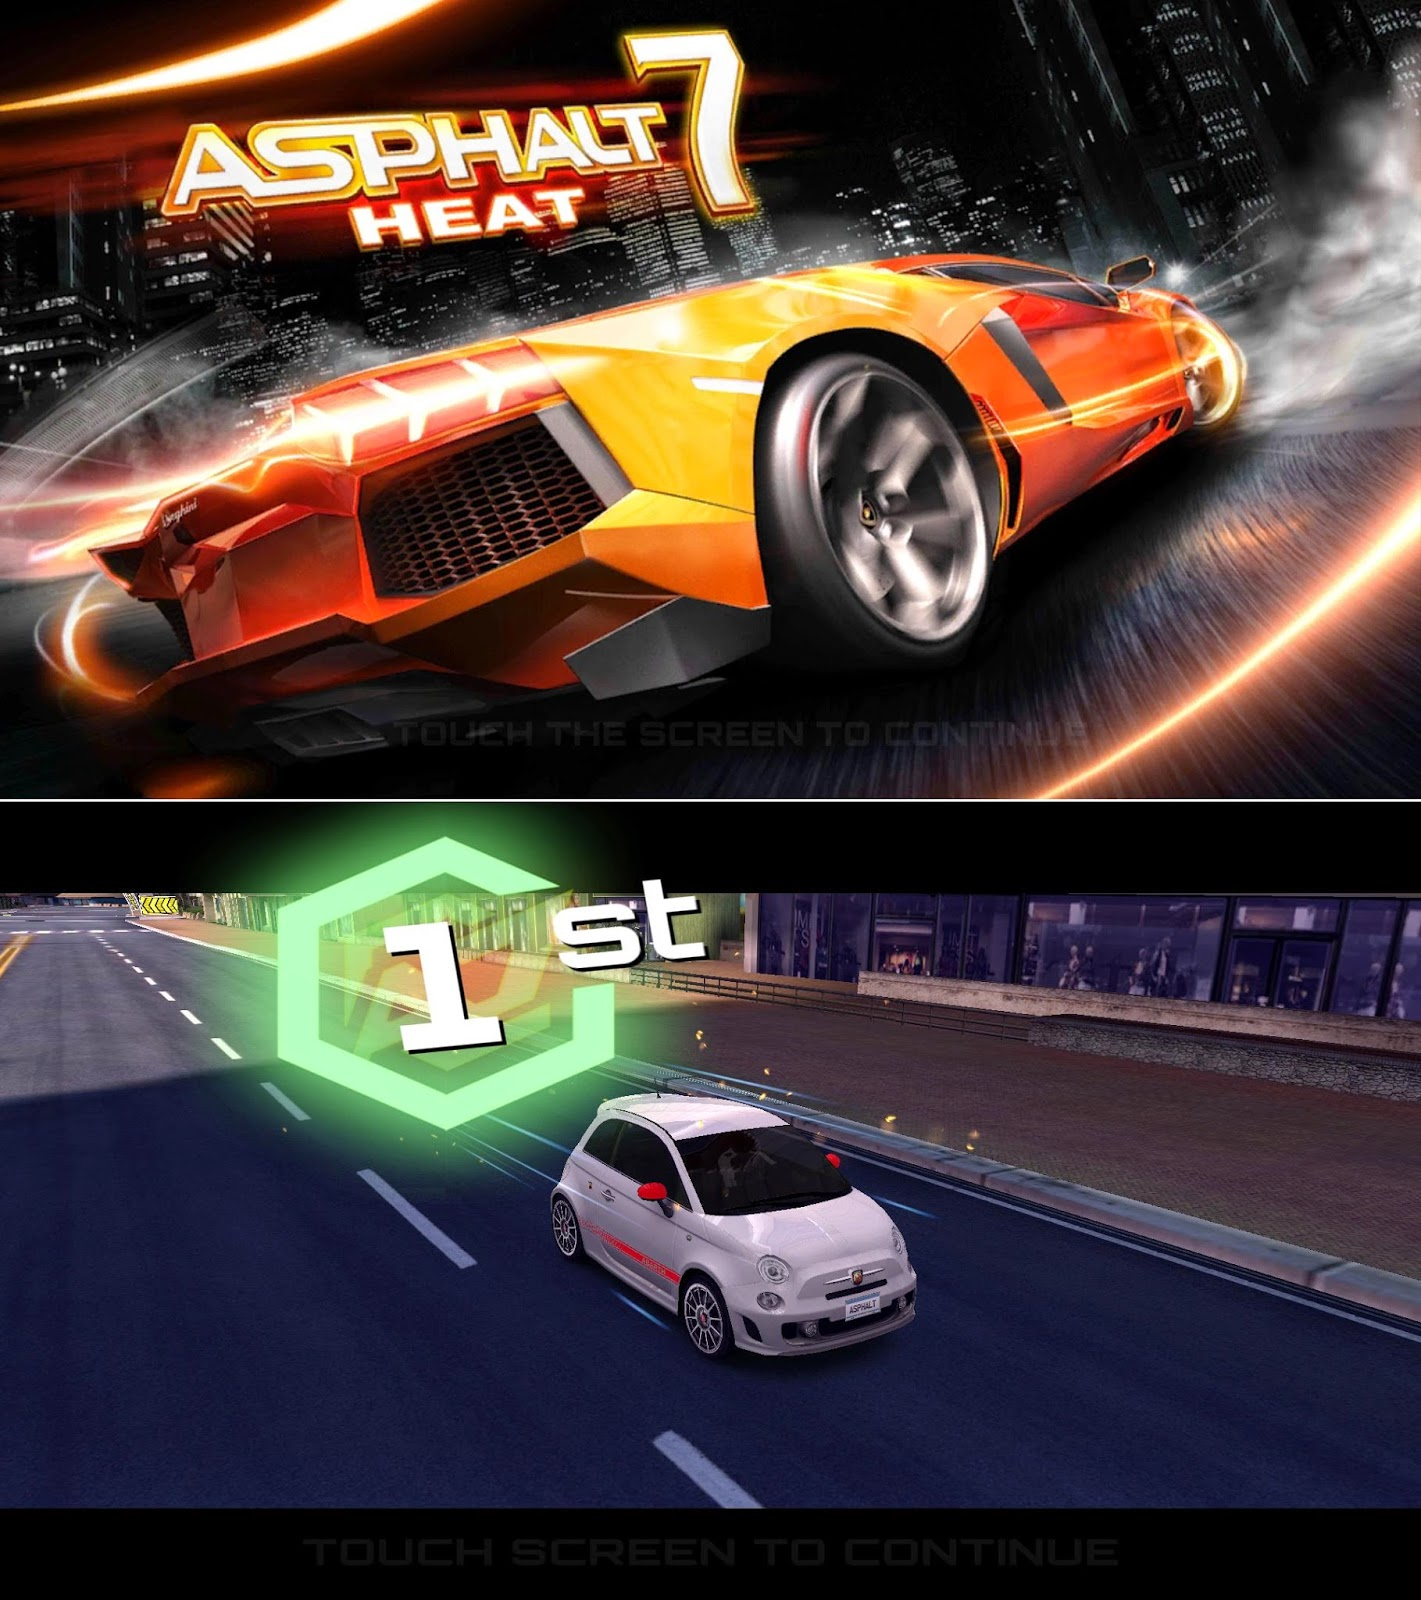 Kata Digital M1 Review, Colossal Inside and Out Asphalt 7